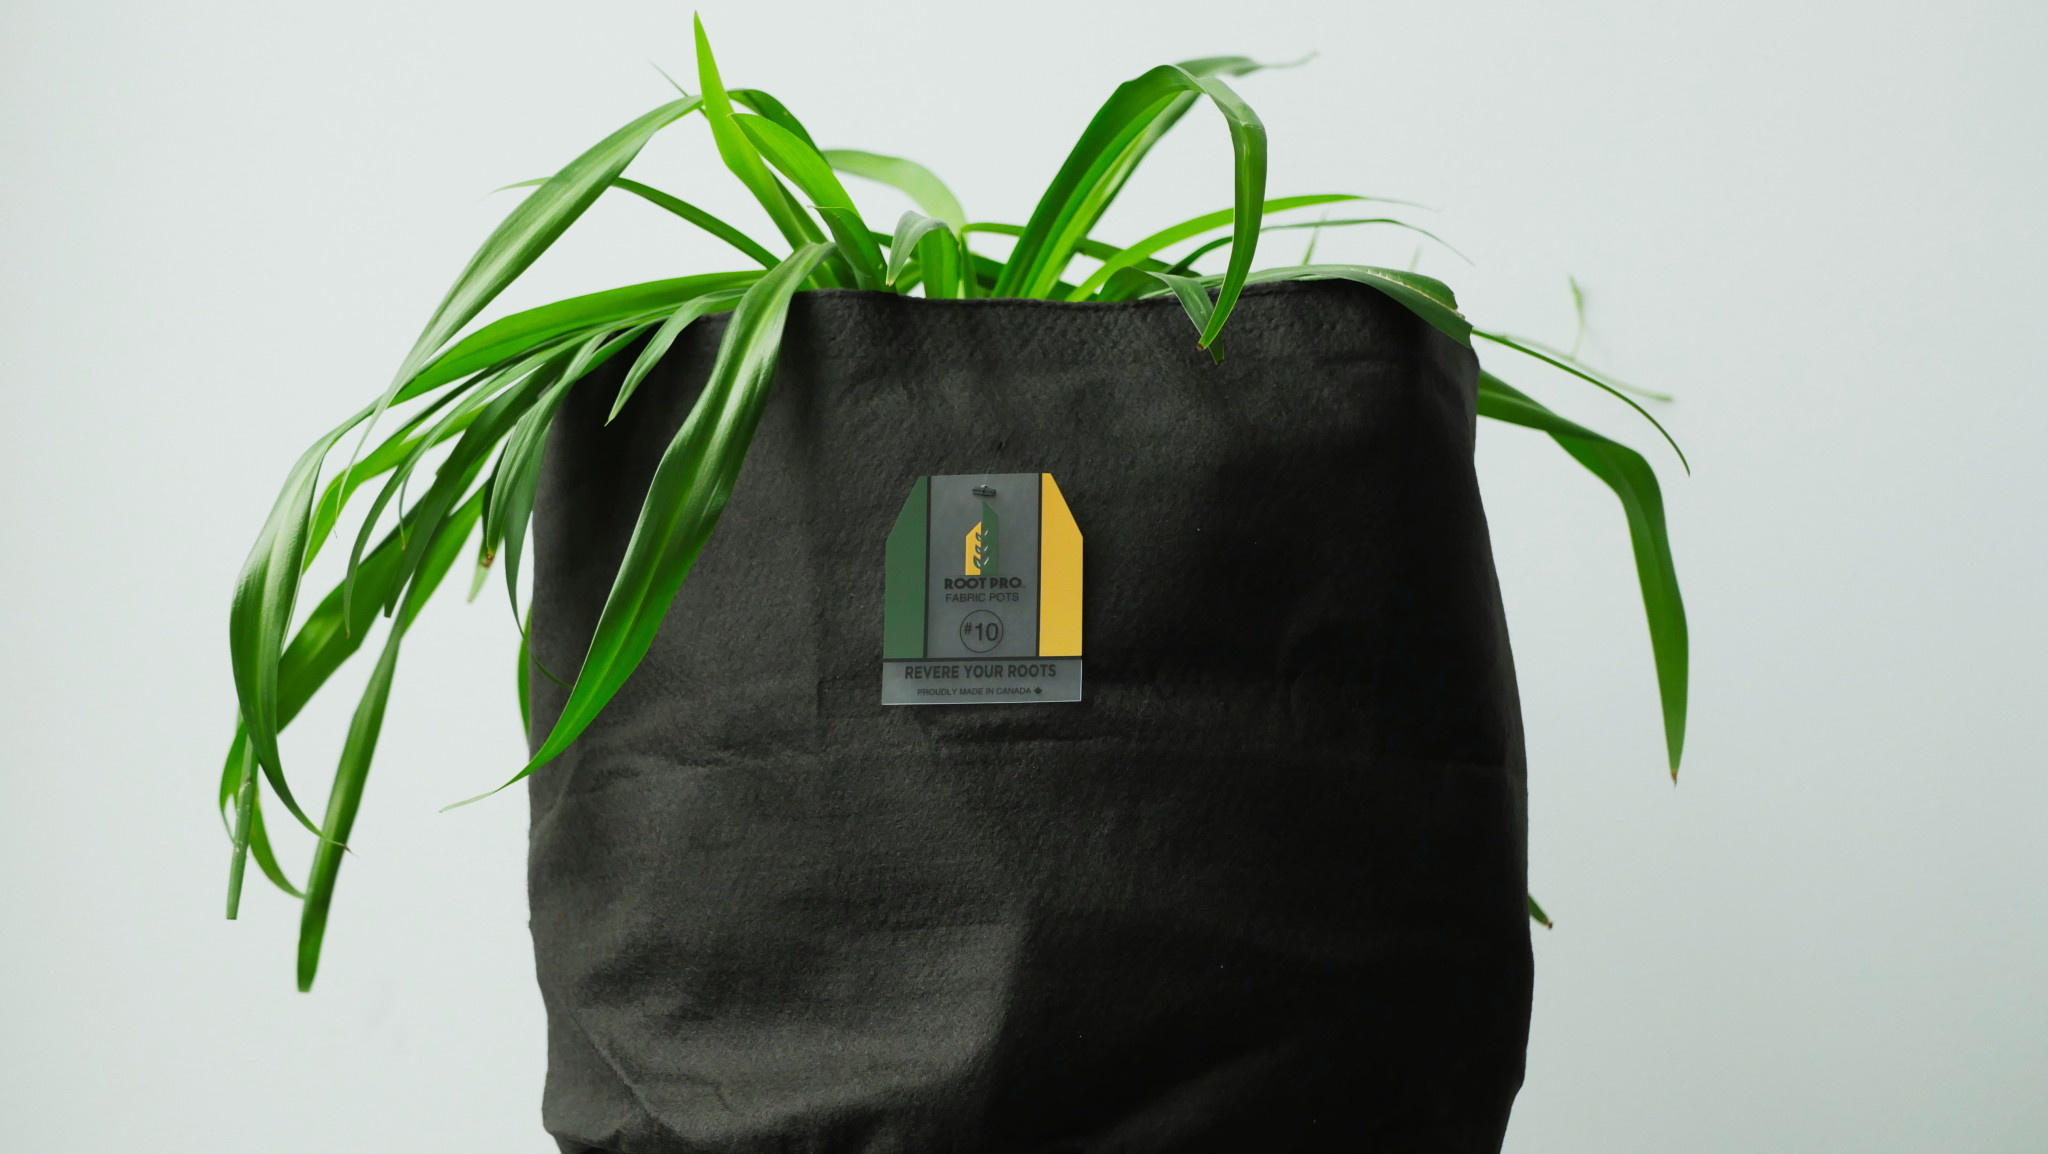 Root Pro Root Pro 10 gallons